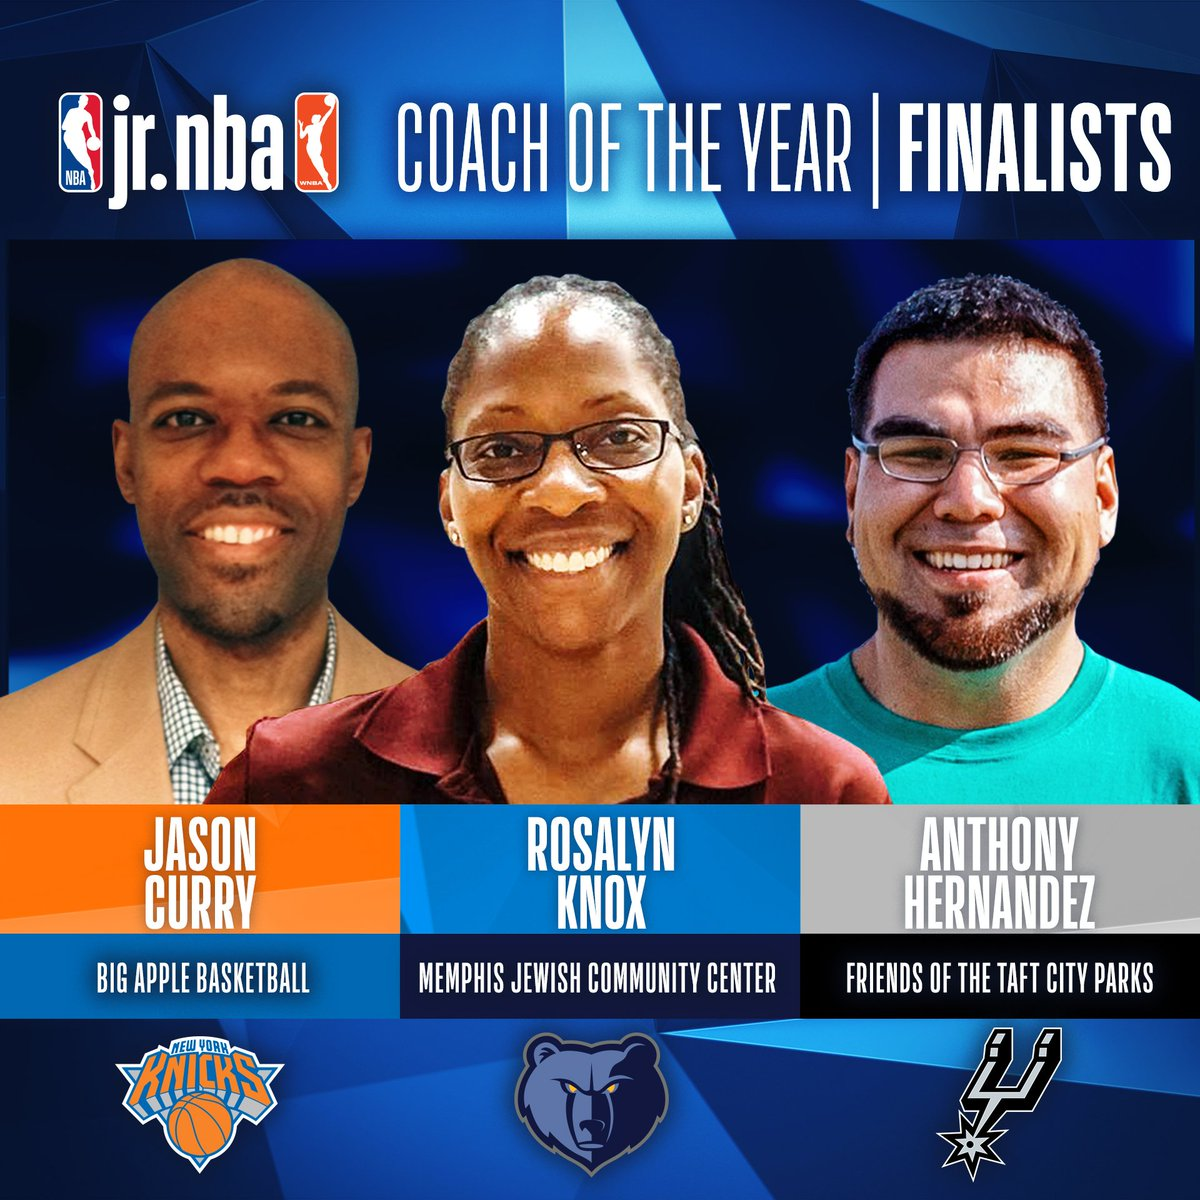 Announcing the 3 FINALISTS for the 2018-19 #JrNBACOY! The winner will be announced on May 17 at the Jr. NBA Youth Basketball Leadership Conference in Chicago! Learn more: https://on.nba.com/2Ga8z7J http://srhlink.com/R4F1HV